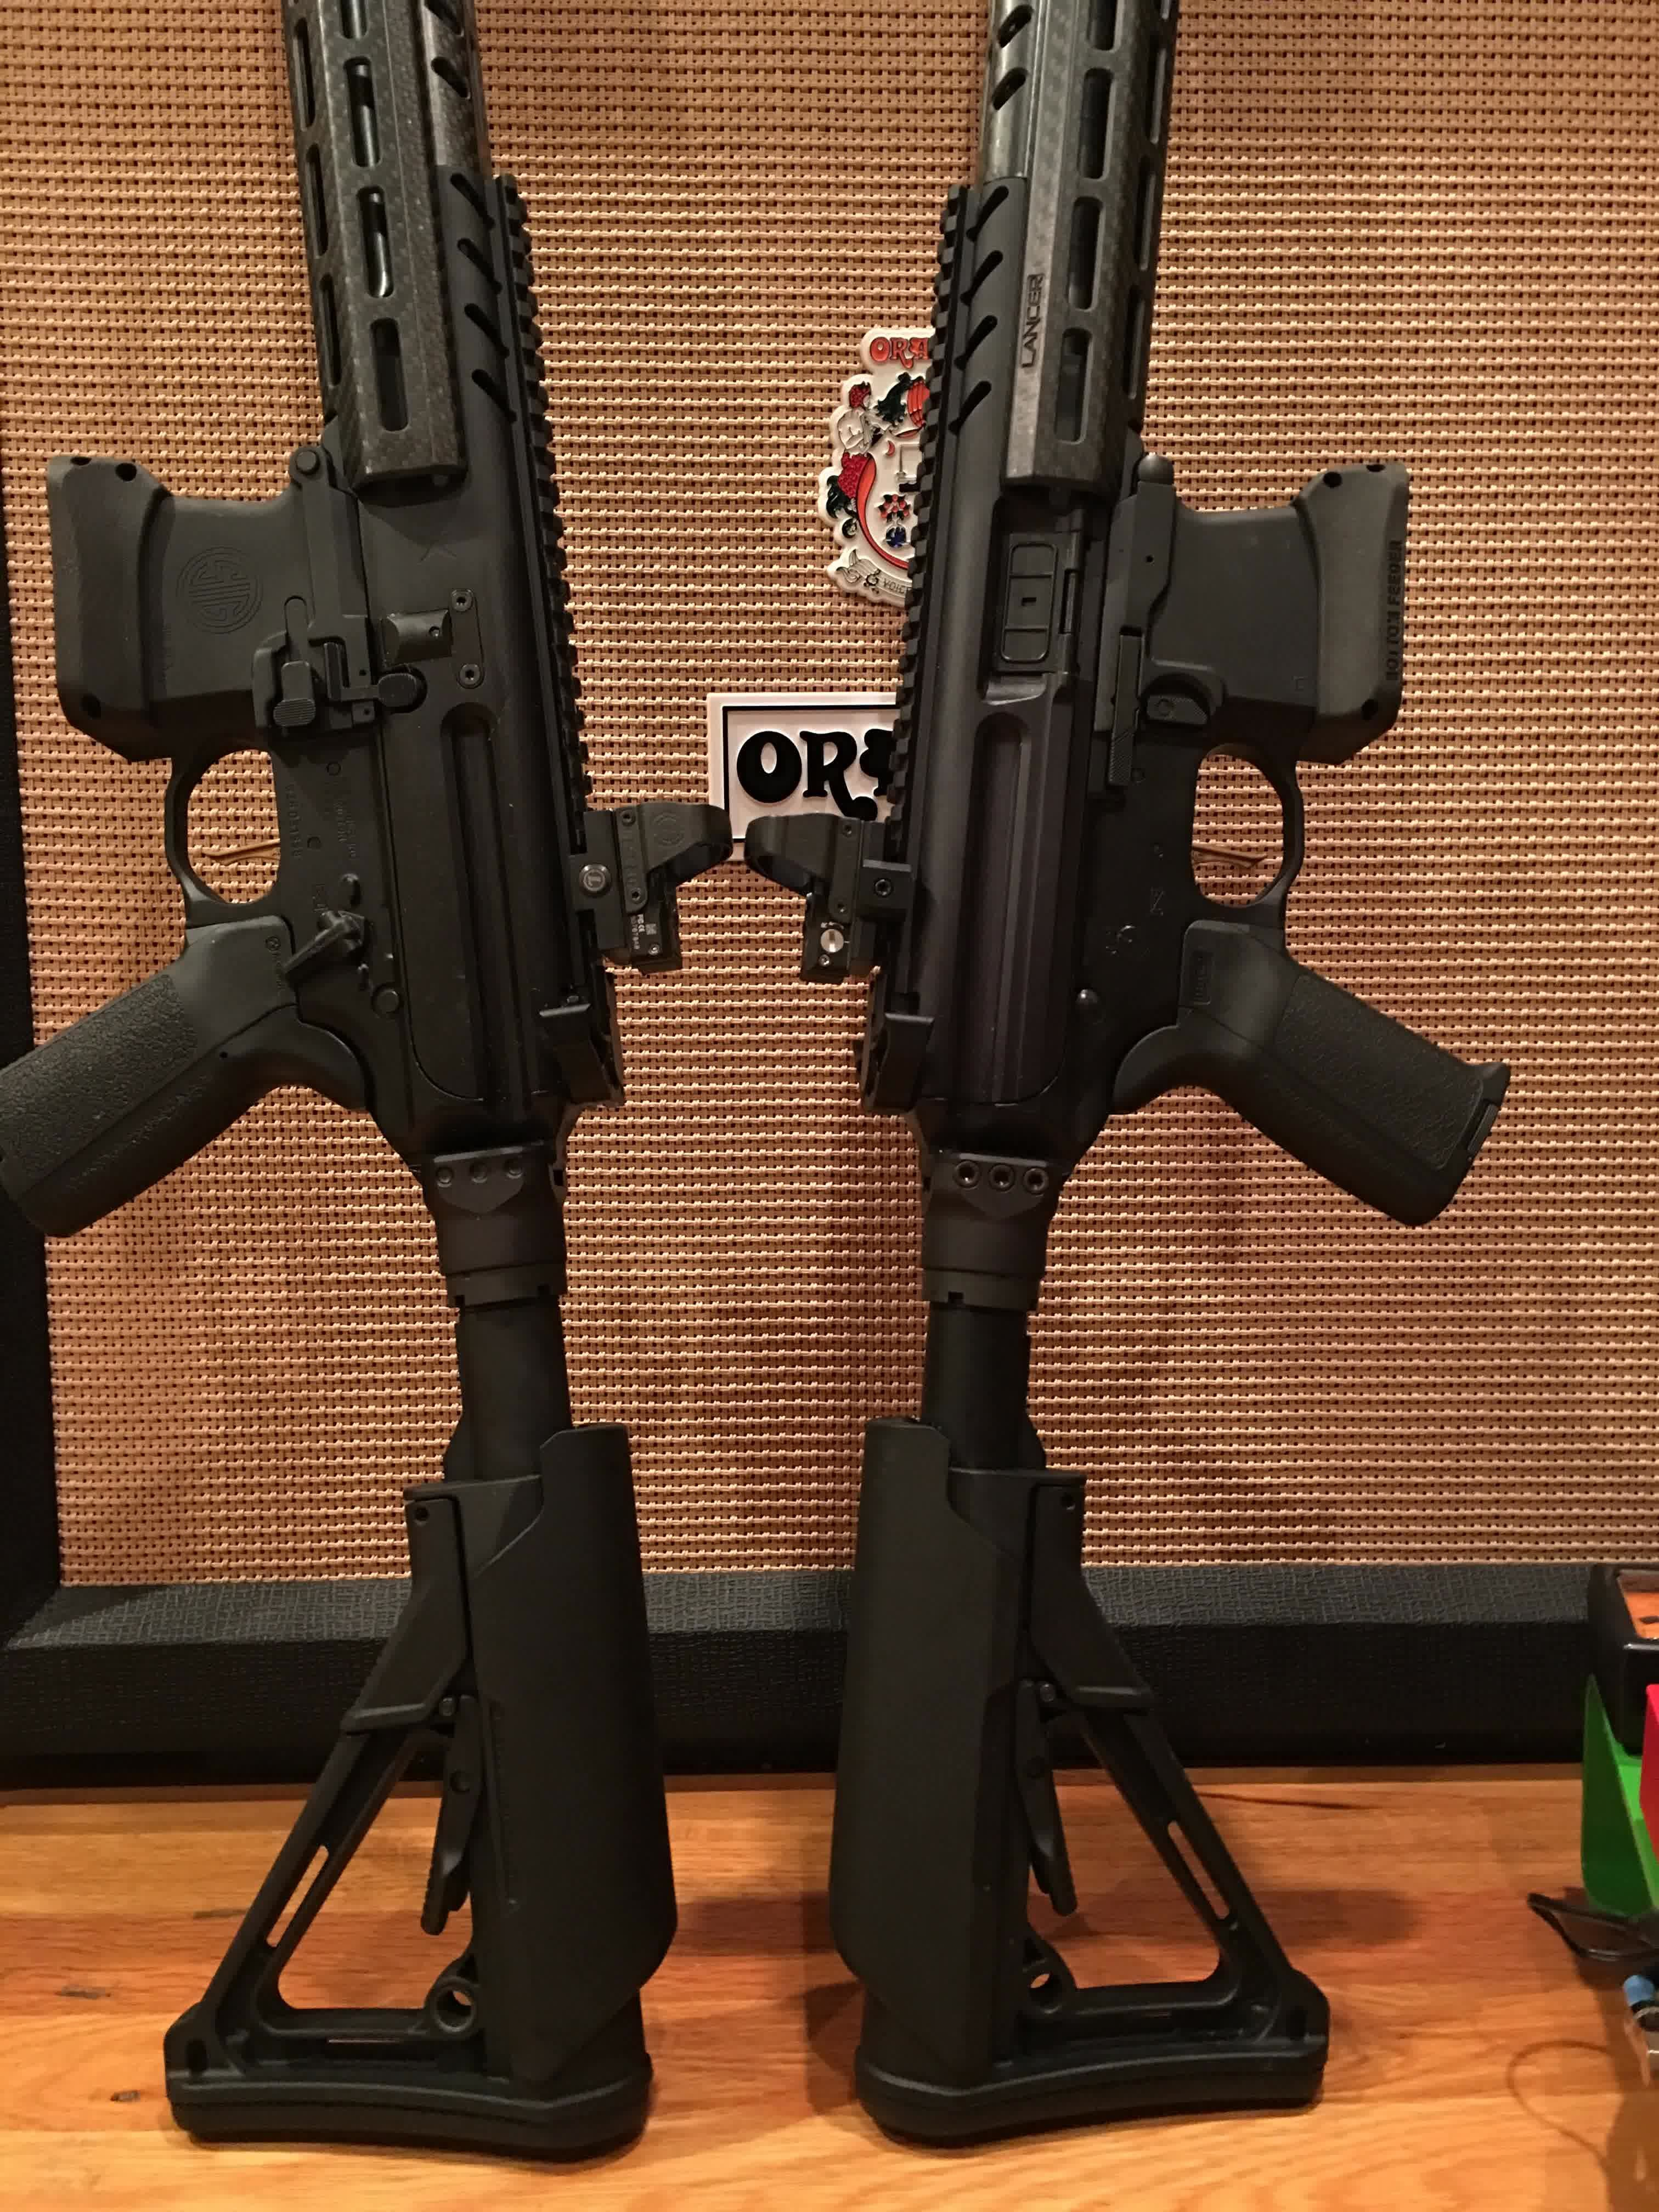 Best stock for MPX? - Pistol Caliber Carbine - Brian Enos's